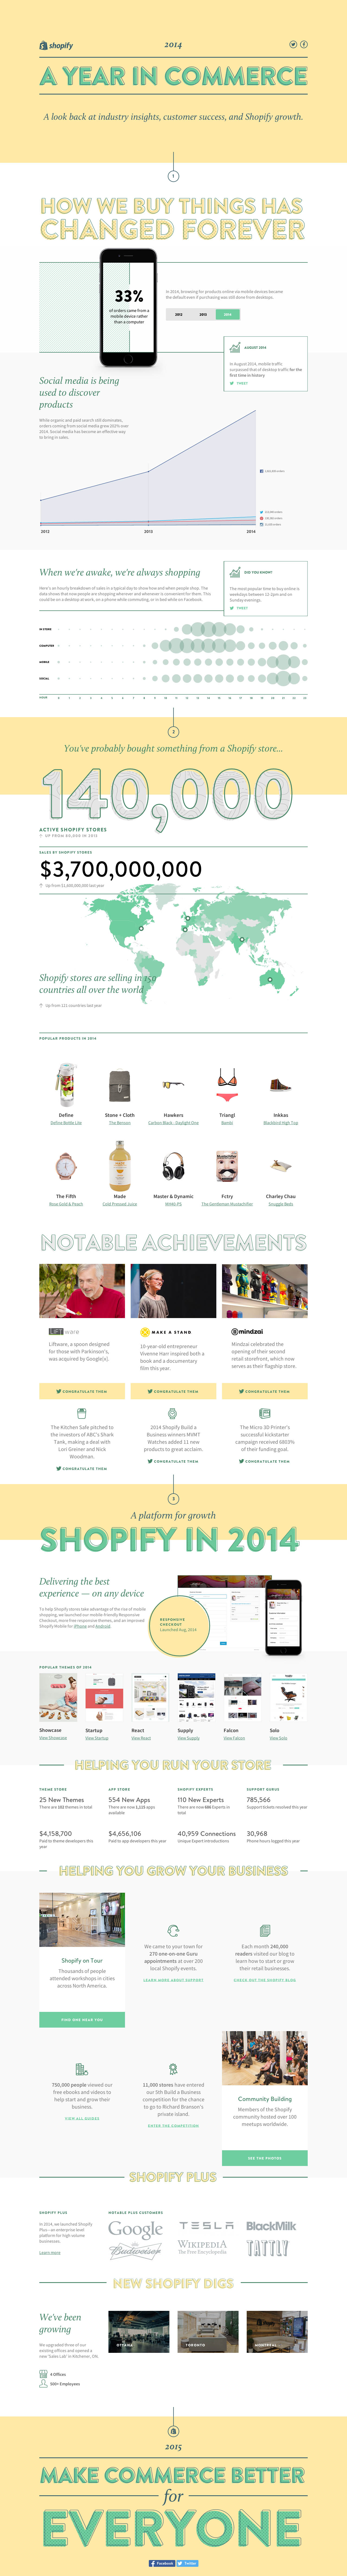 Shopify 2014 Year in Review Website Screenshot